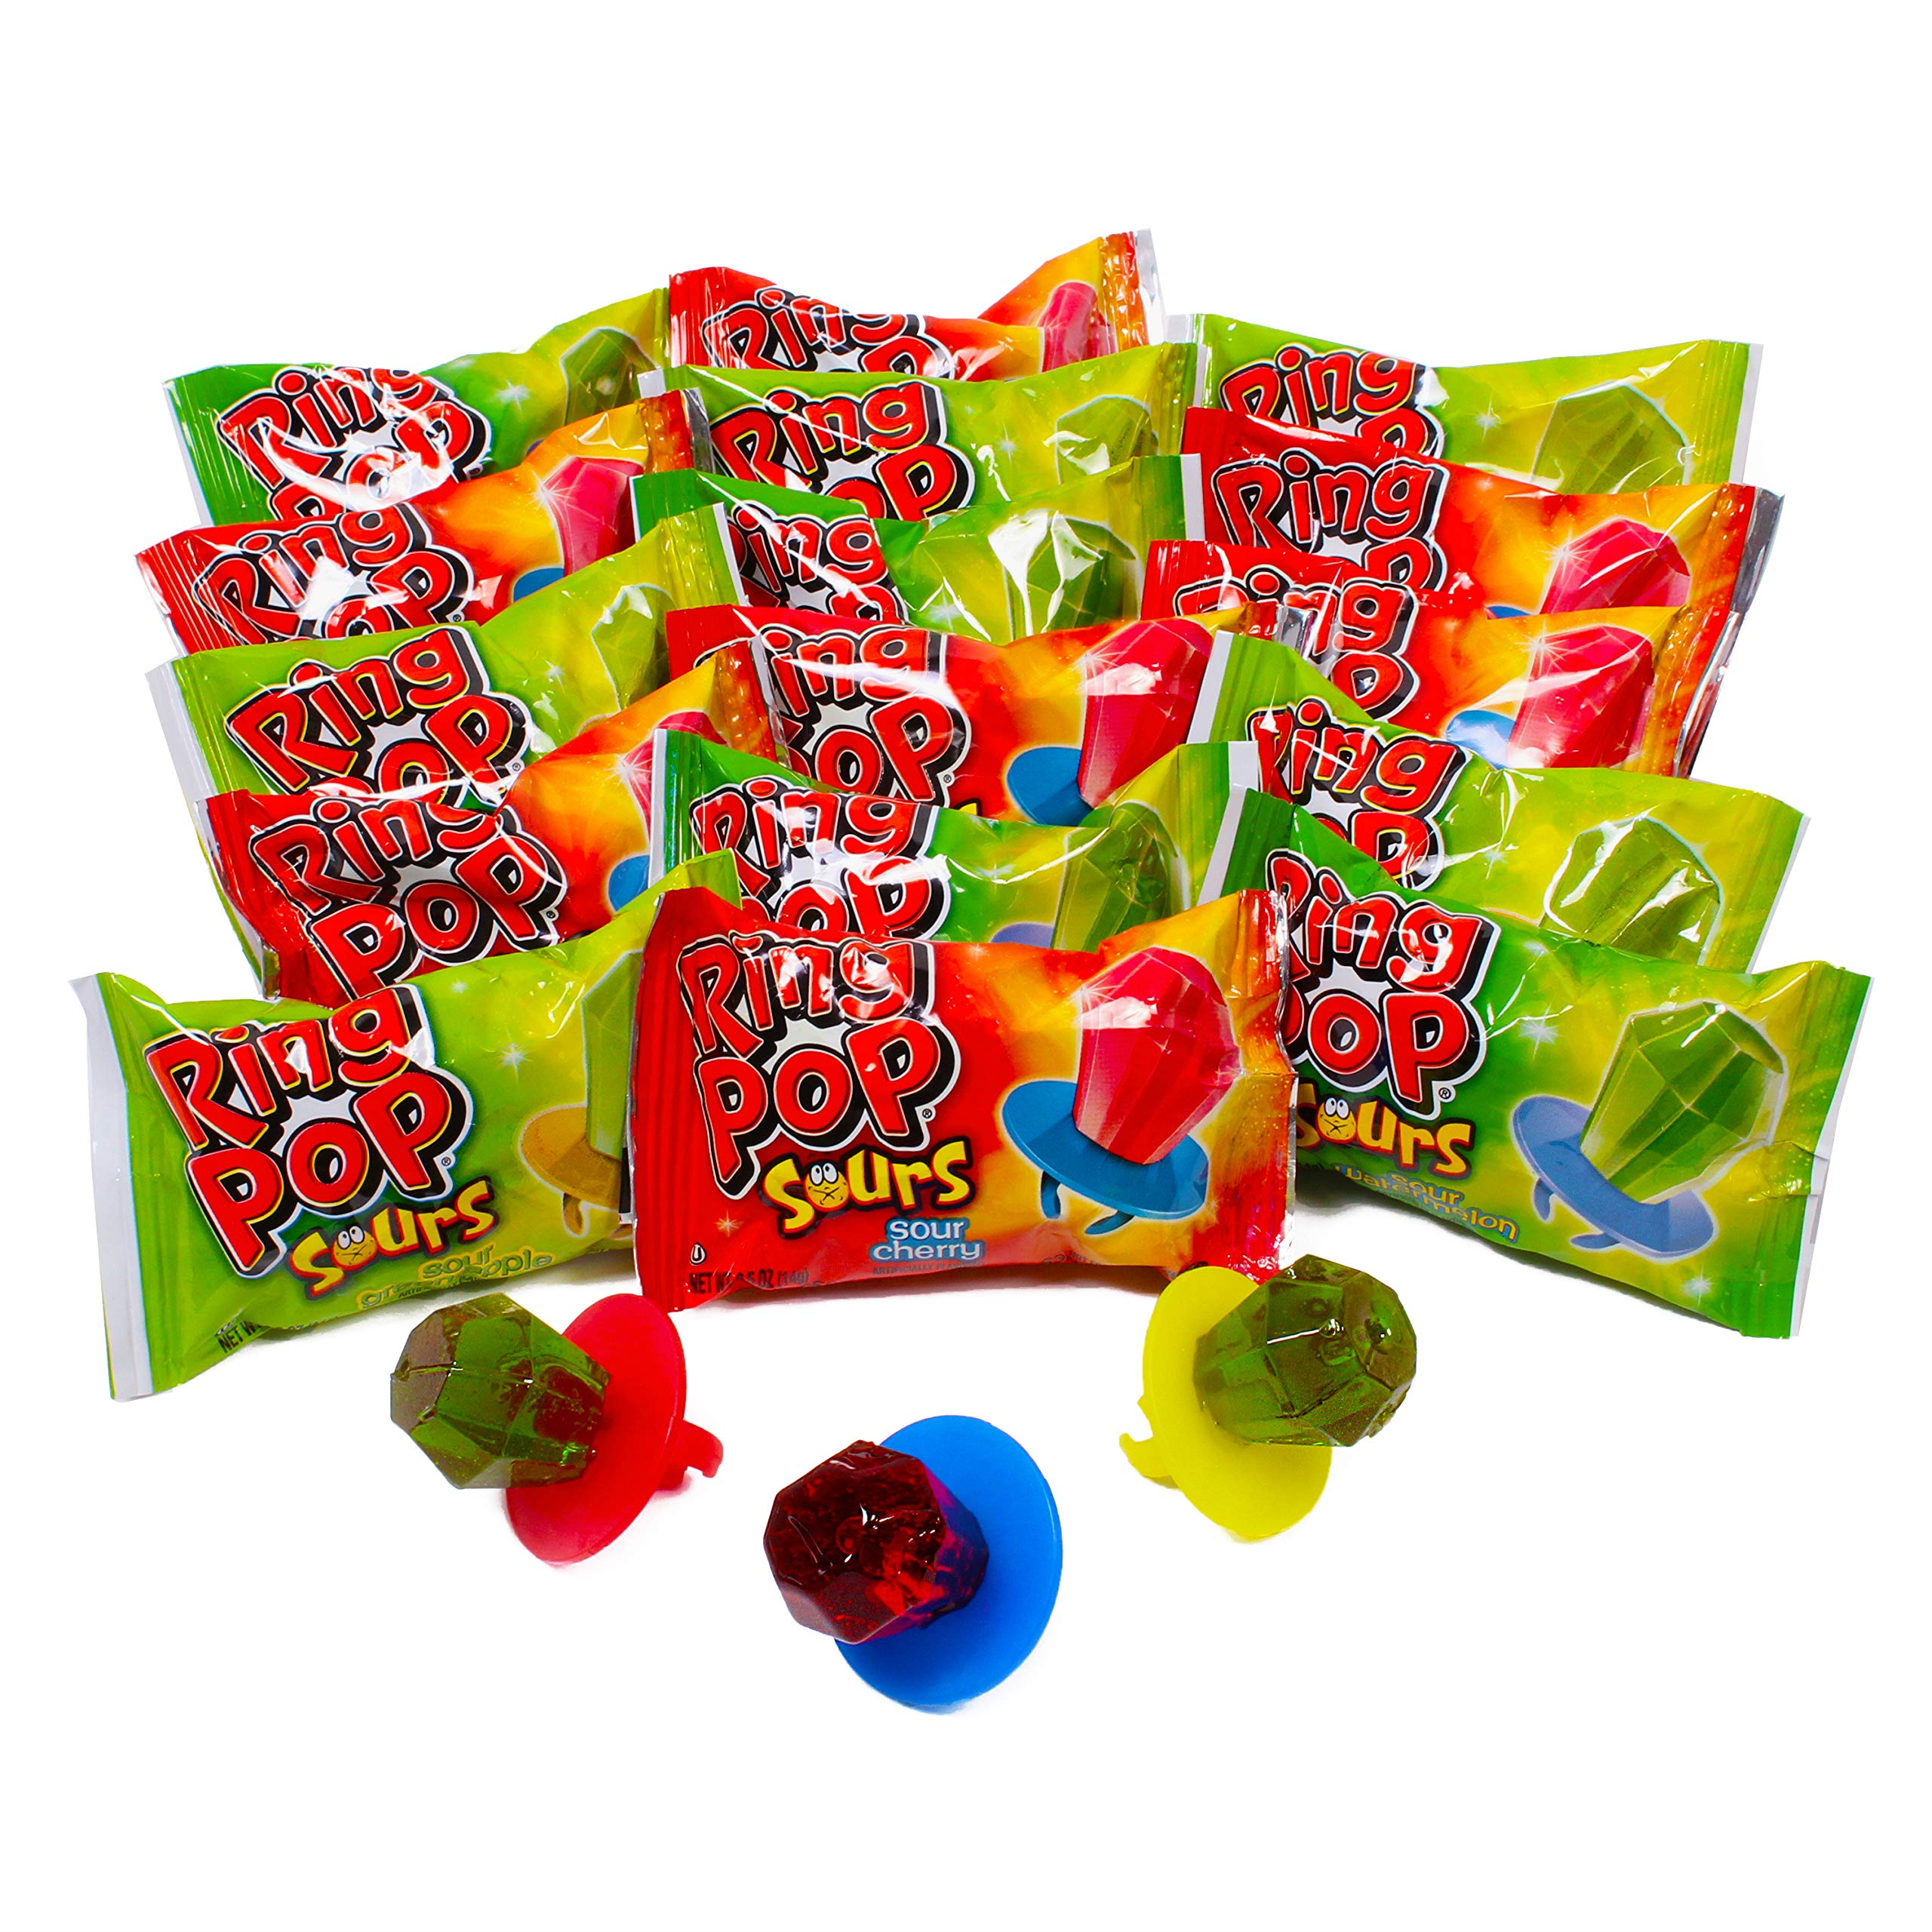 Ring POP Sours Individually Wrapped Bulk Variety Halloween Party Pack - Candy Lollipop Suckers W/ Assorted Flavors, 30 Count (Pack of 1) by Ring Pop